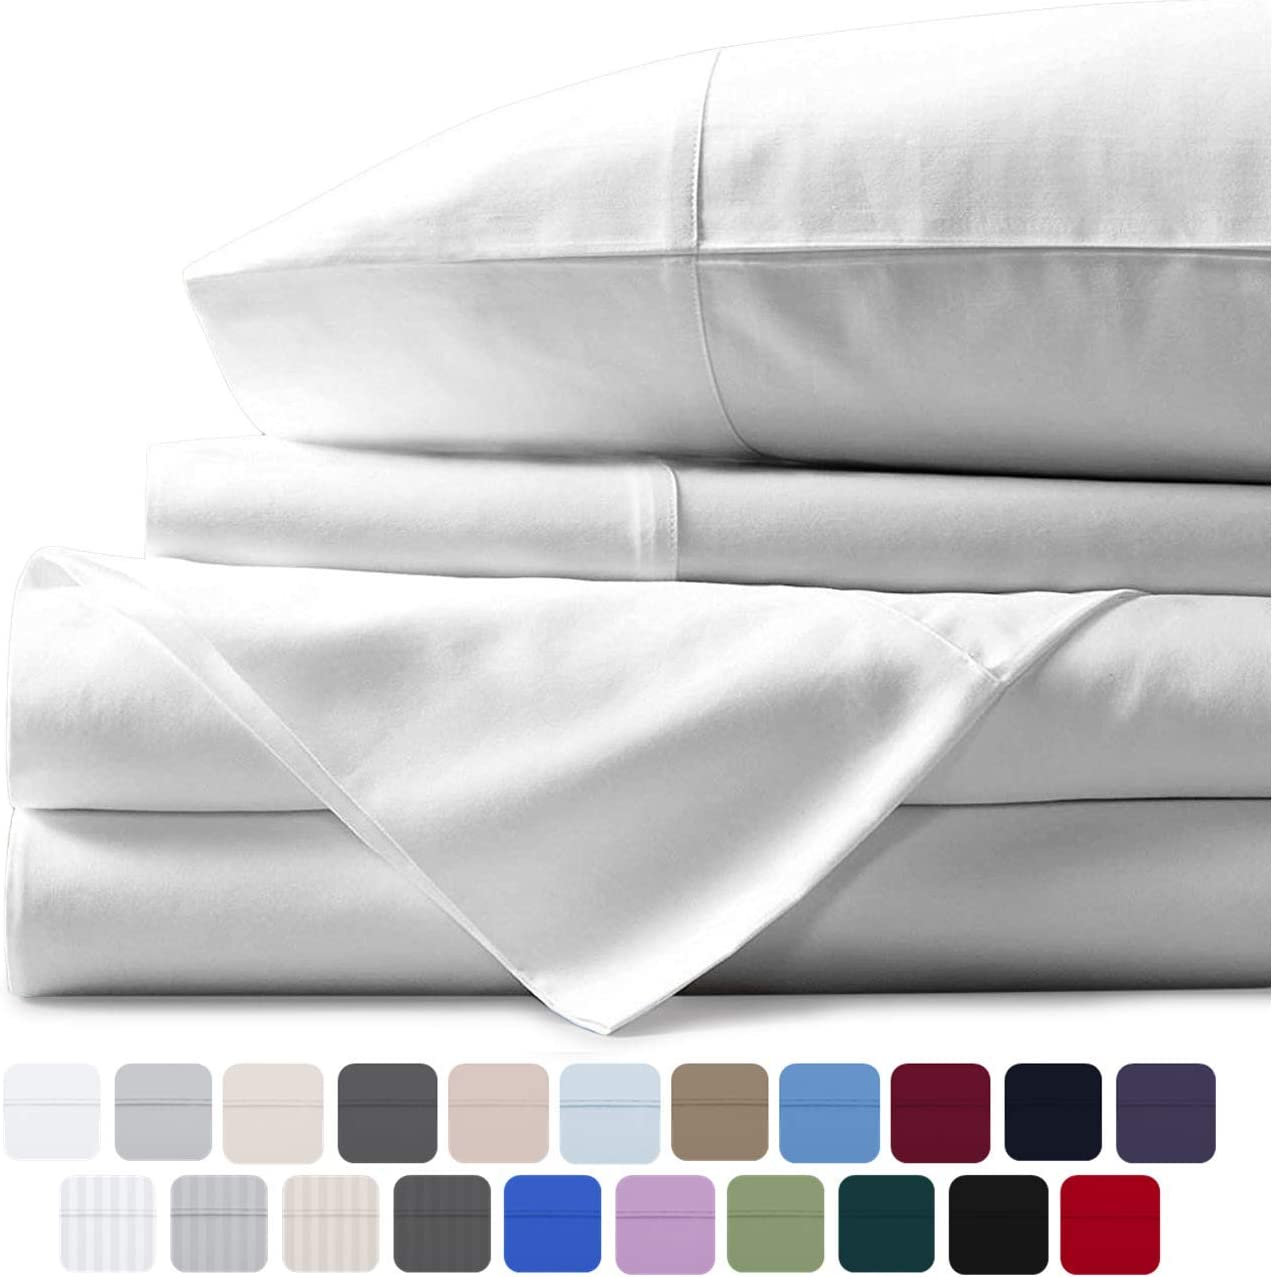 Mayfair Linen 100% Egyptian Cotton Sheets, White Queen 6 PC Sheets Set, 800 Thread Count Long Staple Cotton, Sateen Weave for Soft and Silky Feel, Fits Mattress Upto 18'' DEEP Pocket